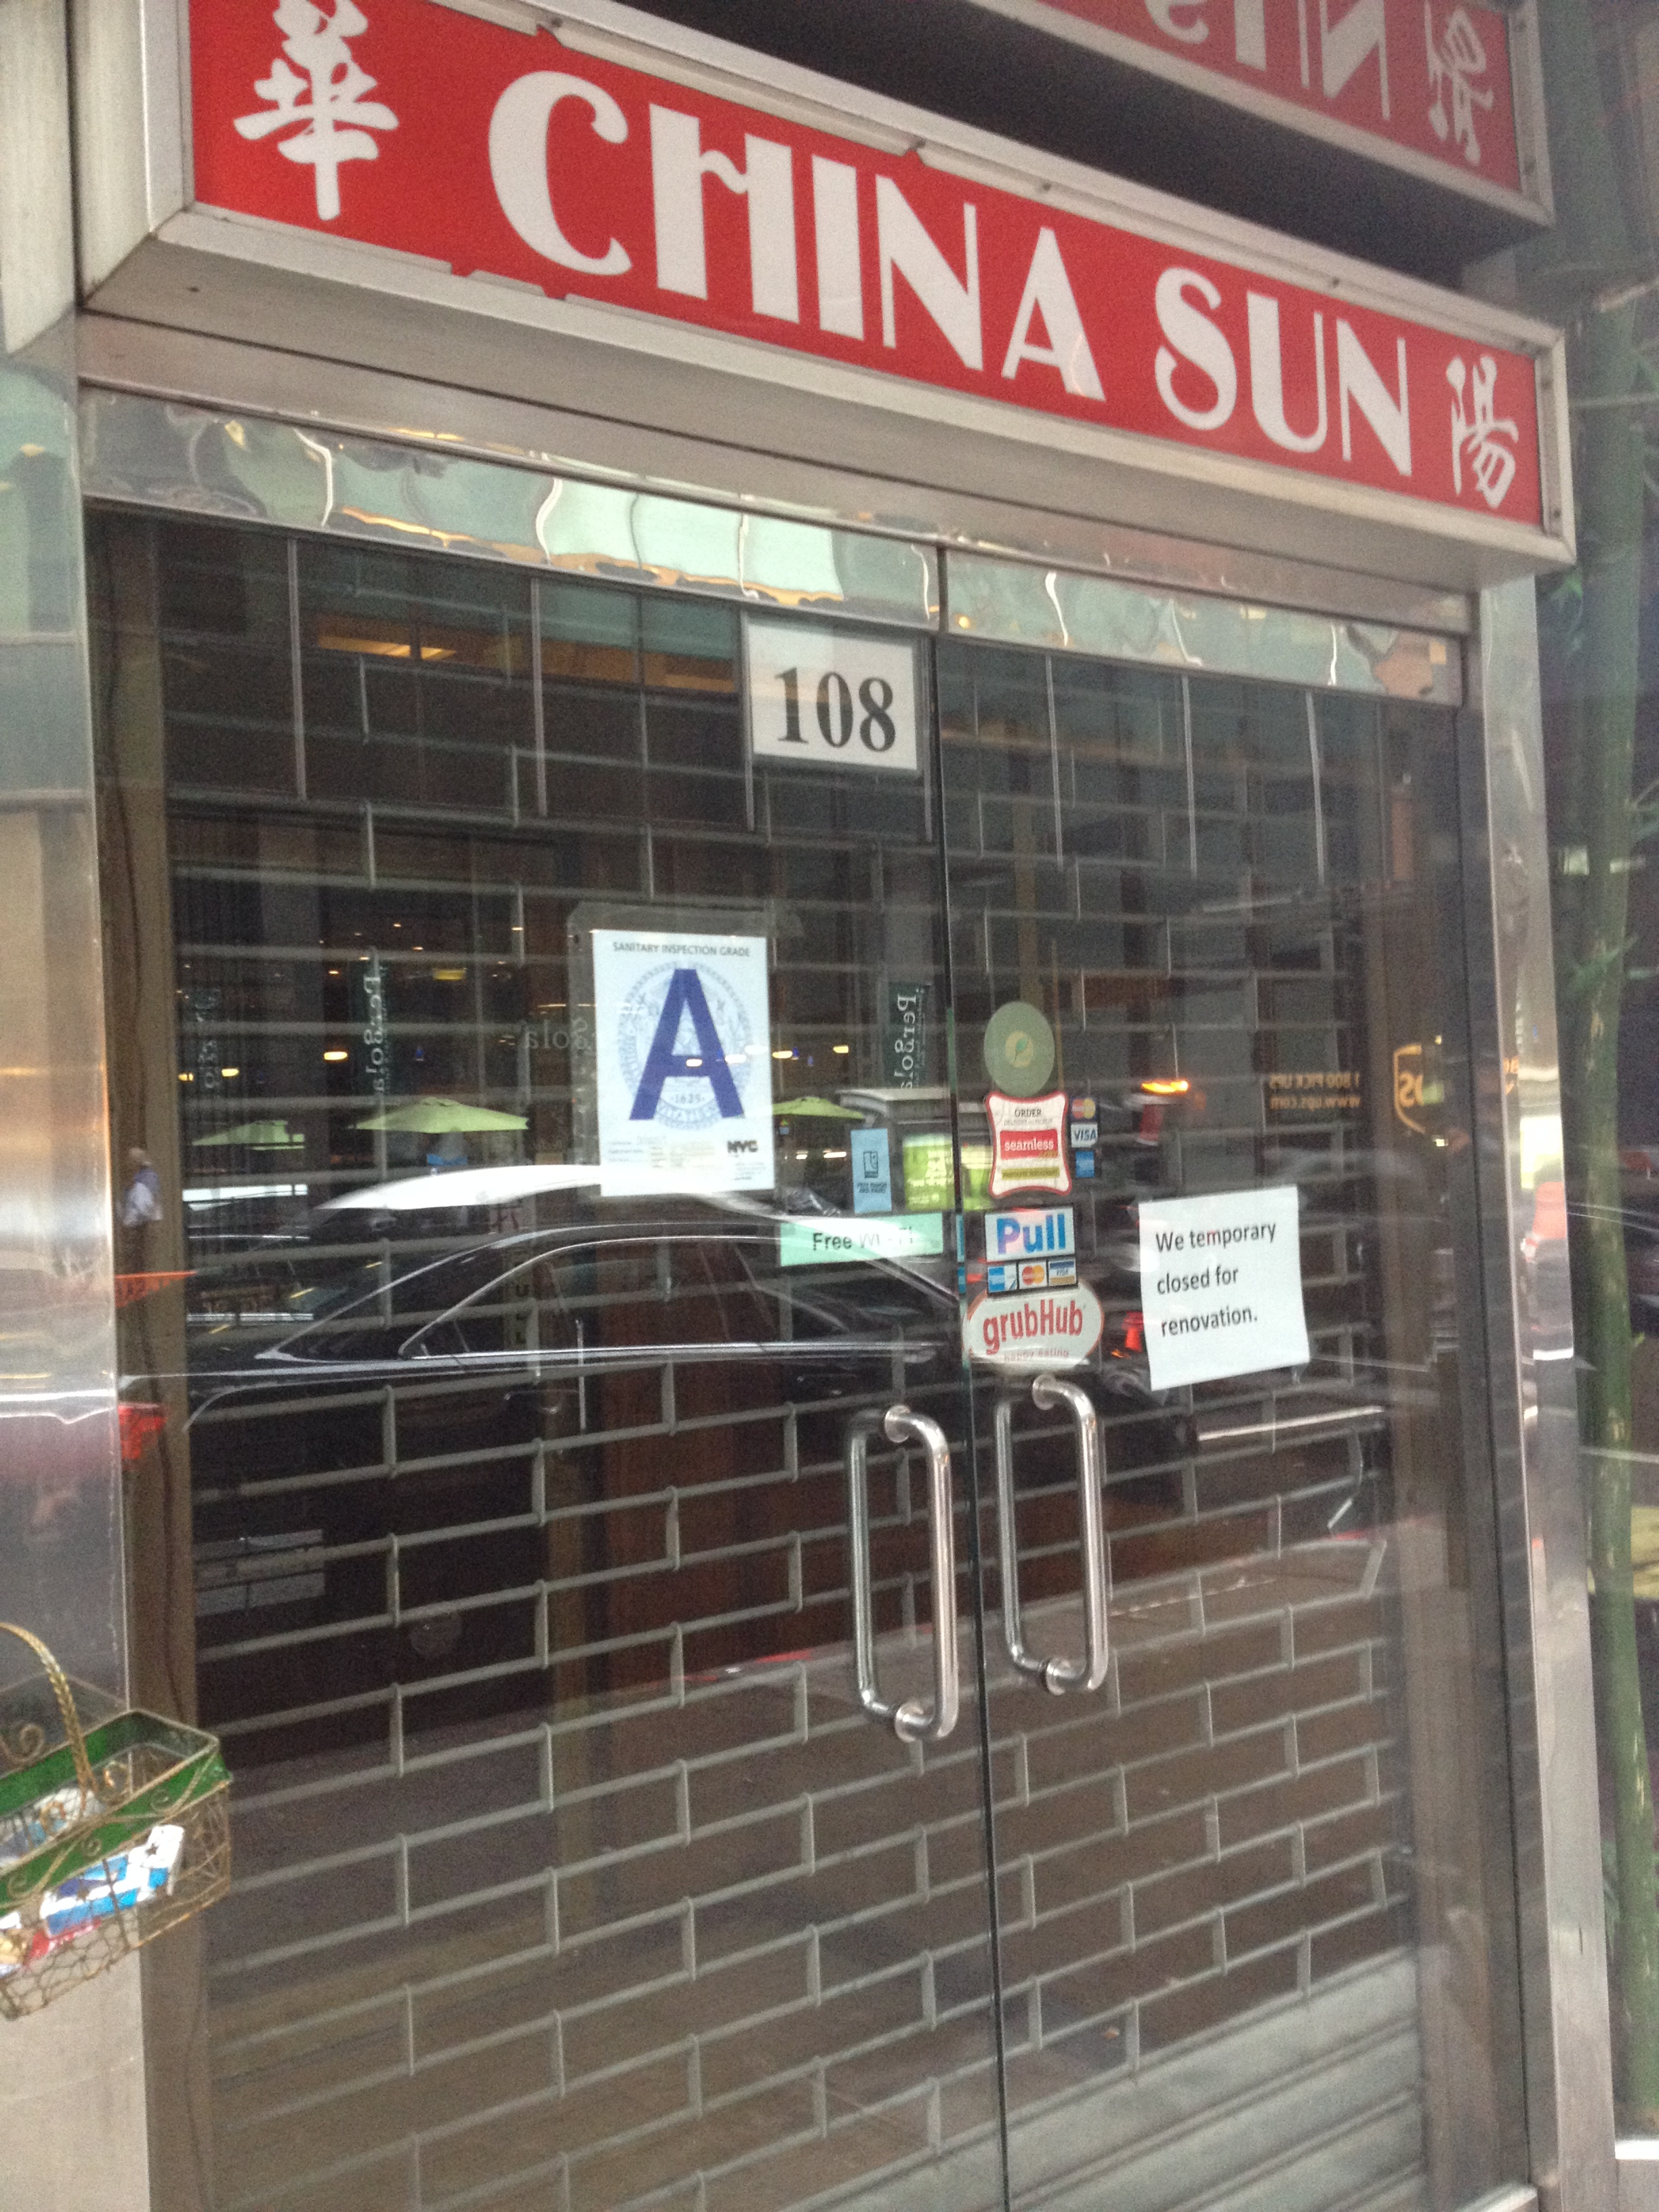 Is China Sun really closed?